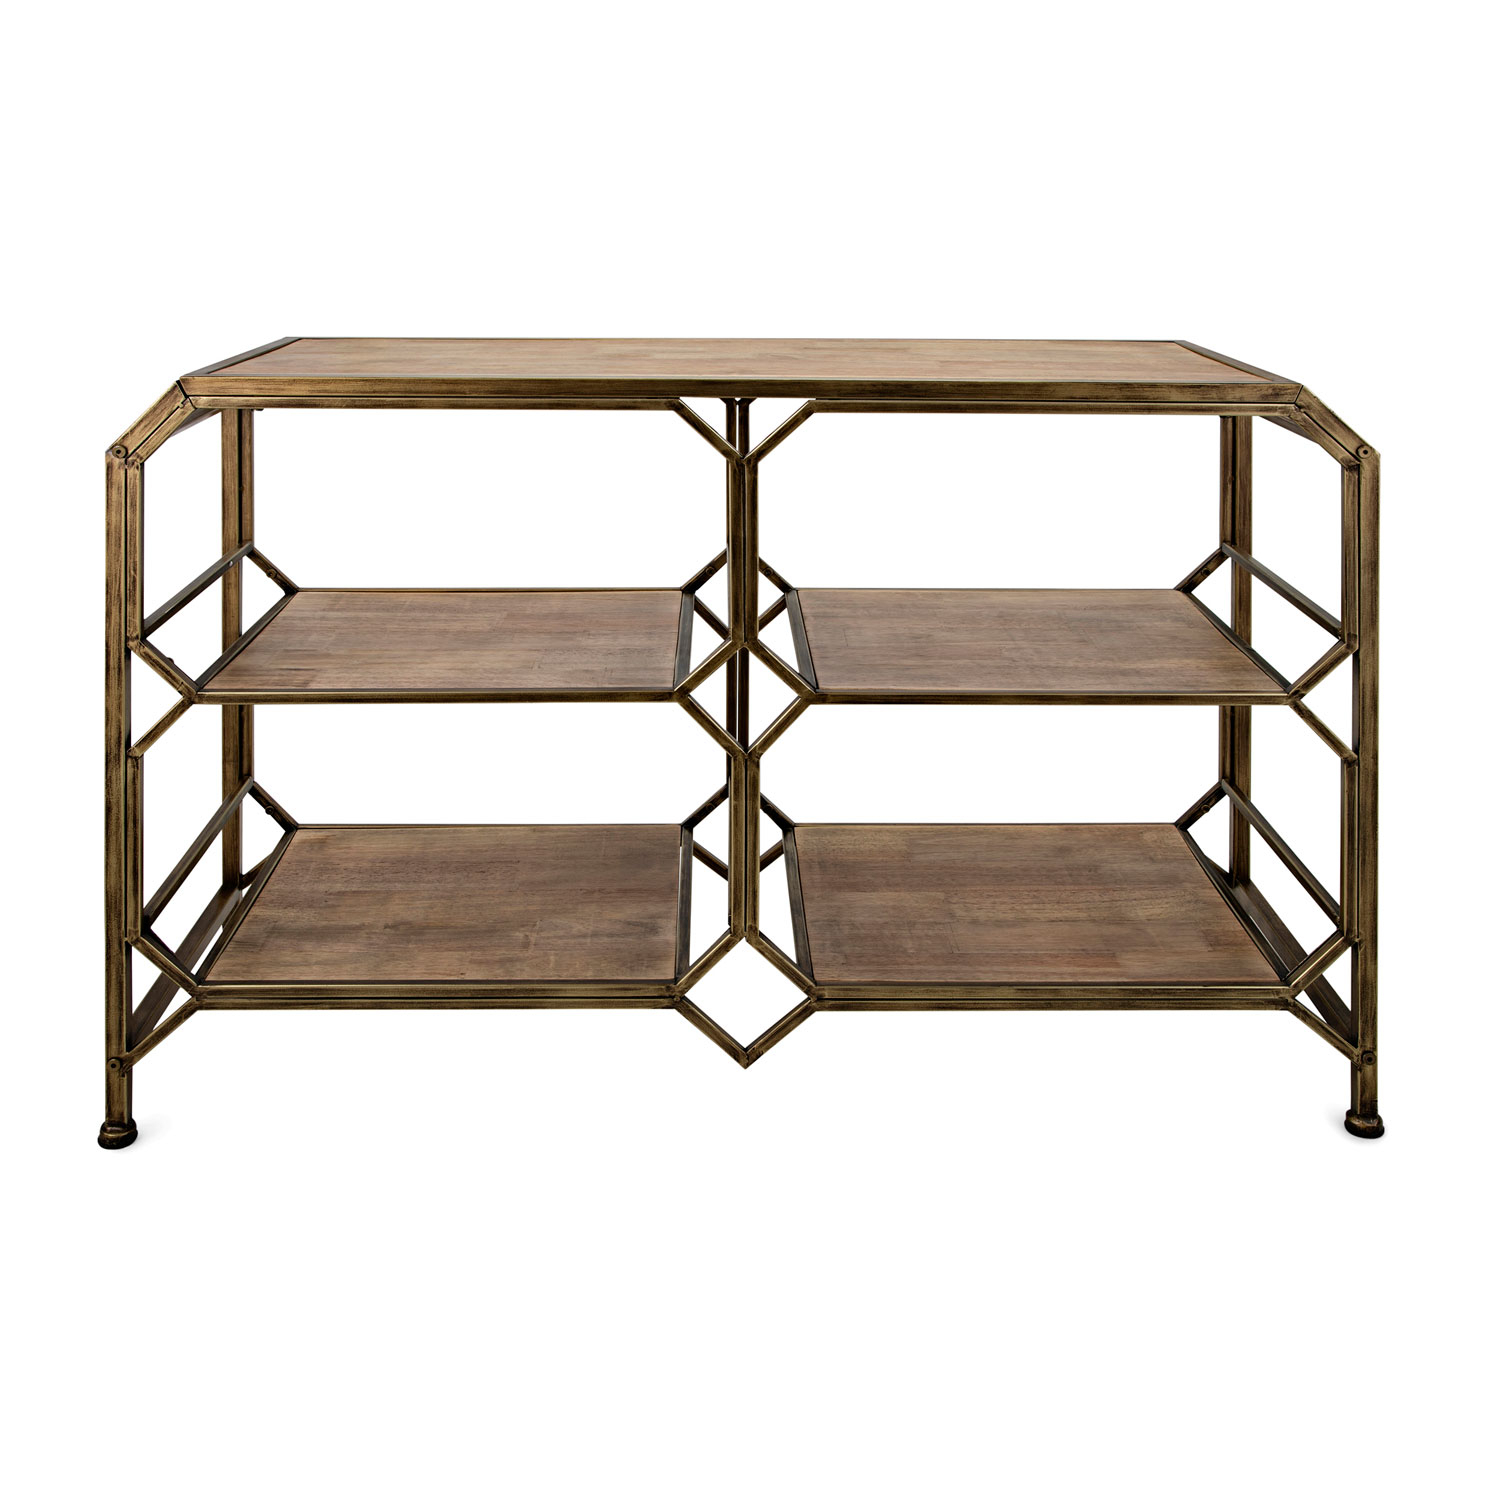 Imax Tobias Console Shelf 16280 | Bellacor For Tobias Media Console Tables (View 7 of 30)